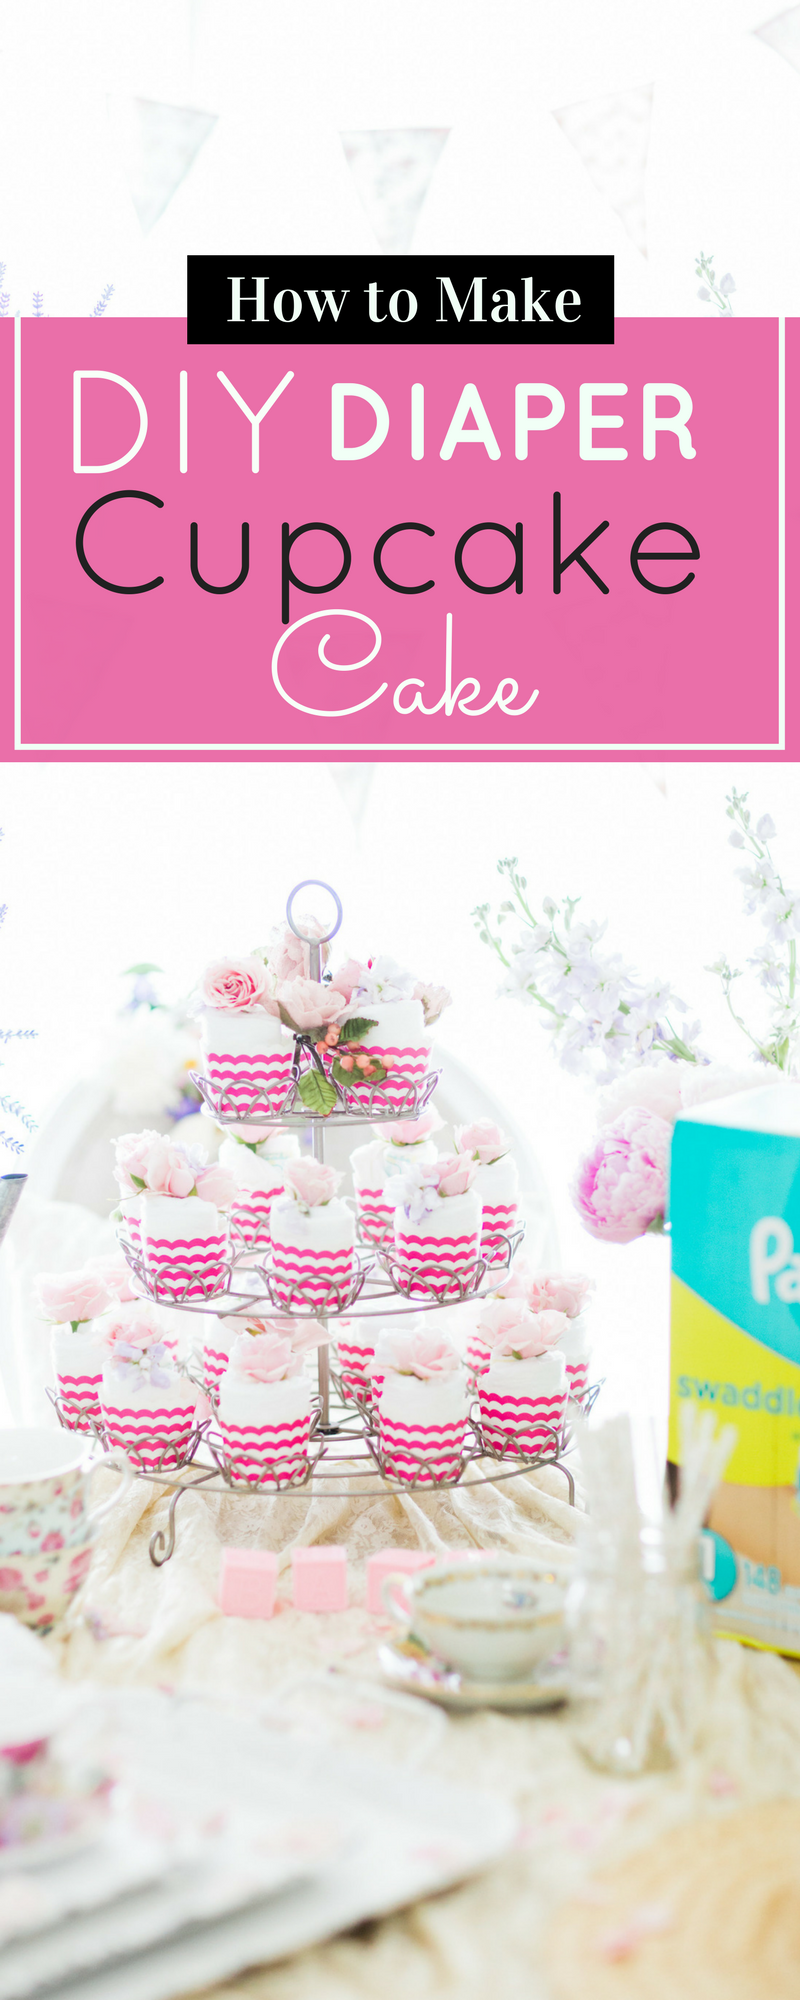 DIY diaper cake perfect for baby showers! | glitterinc.com | @glitterinc